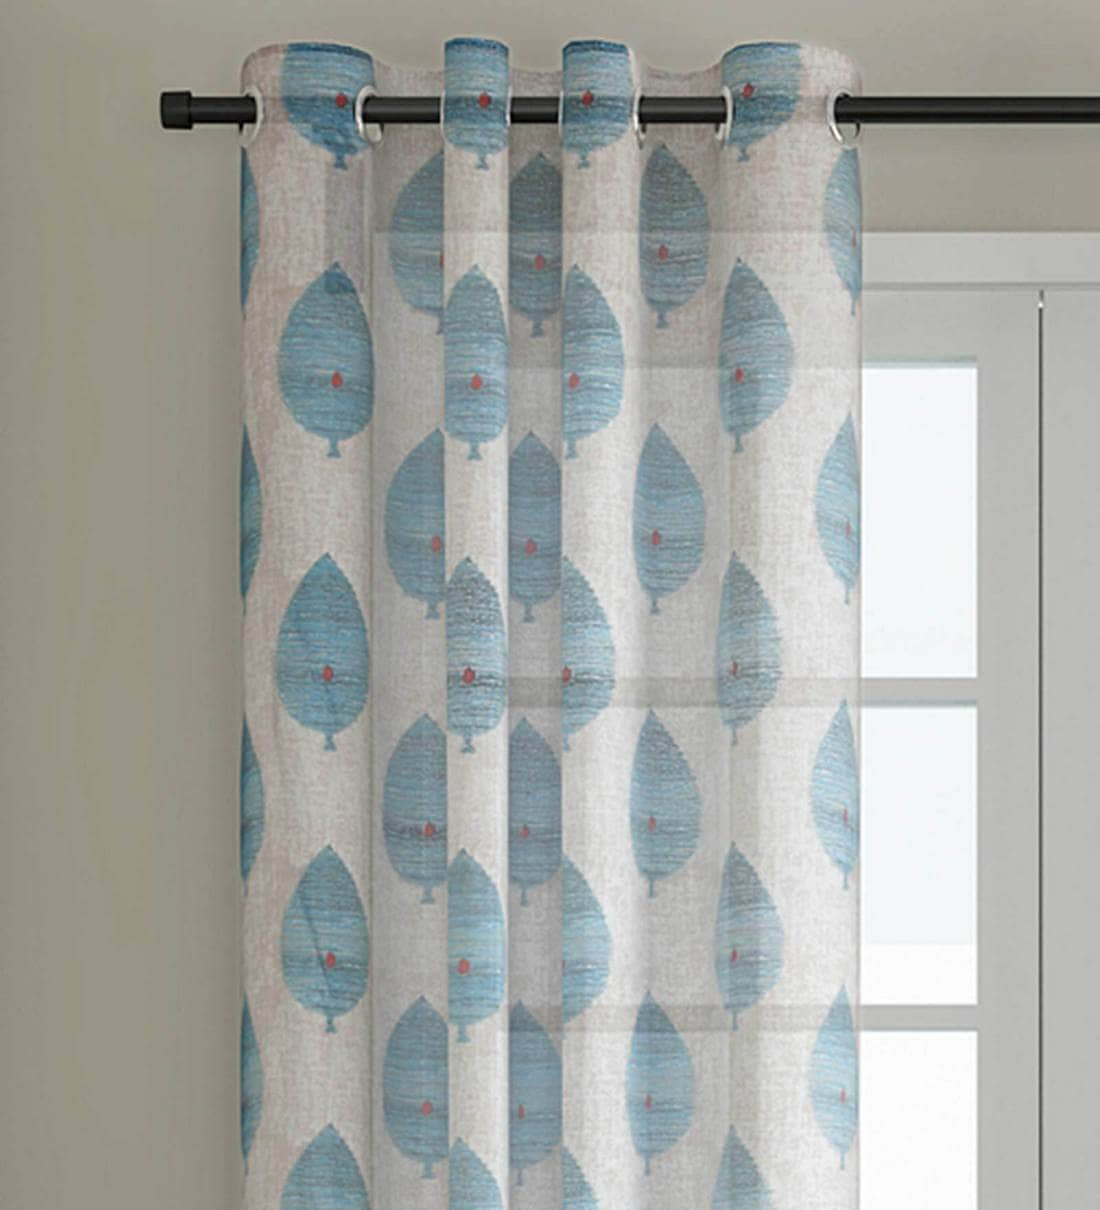 Buy Cotton Semisheer 5 Feet Eyelet Window Curtain By Soumya Online Abstract Curtains And Drapes Curtains And Drapes Furnishings Pepperfry Product